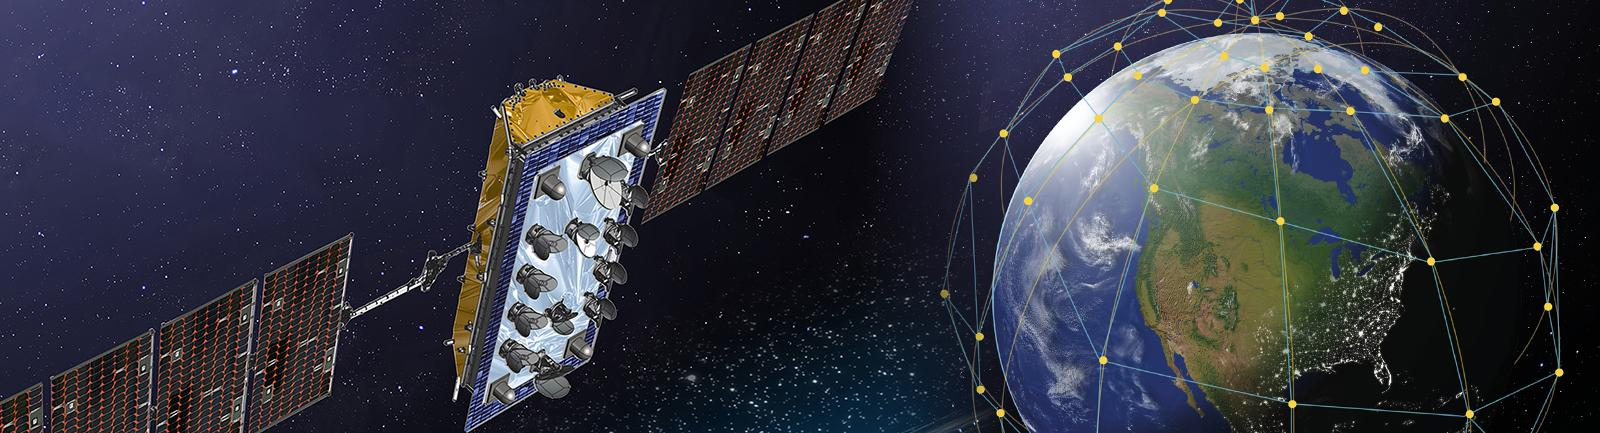 US satellite data company LeoSat establishes its first European office in the Netherlands.